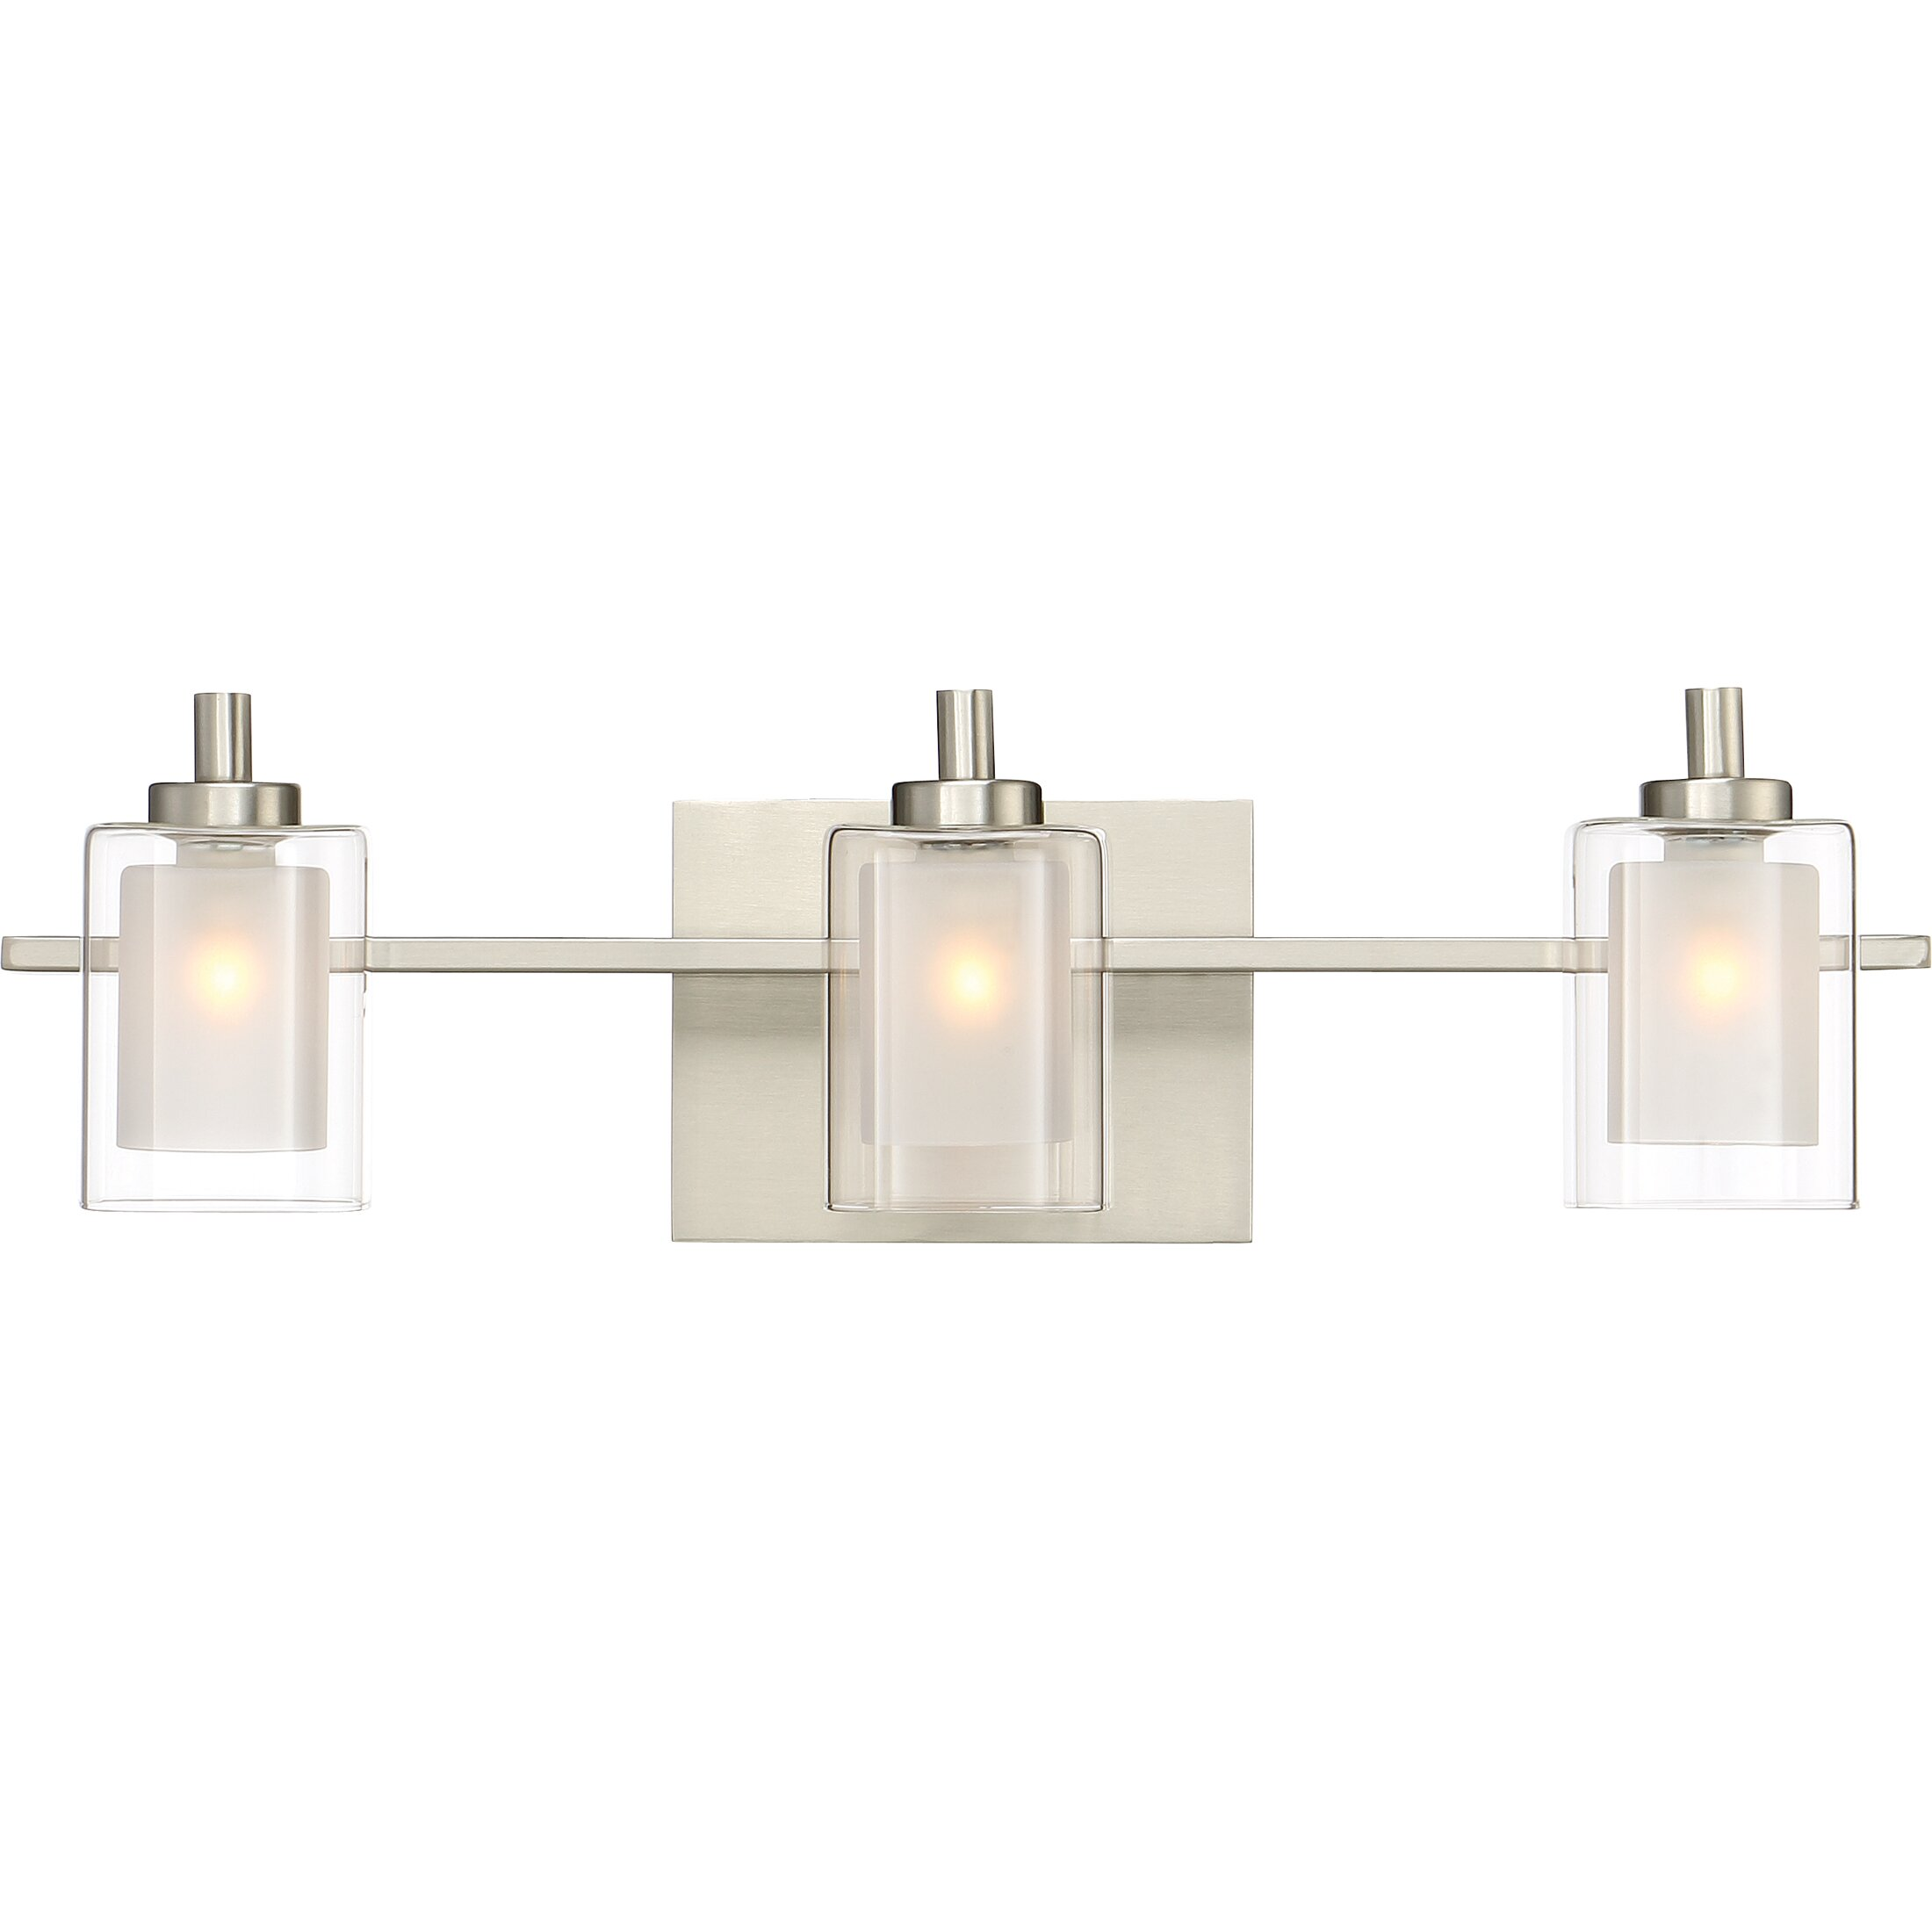 5 light bathroom vanity light | My Web Value